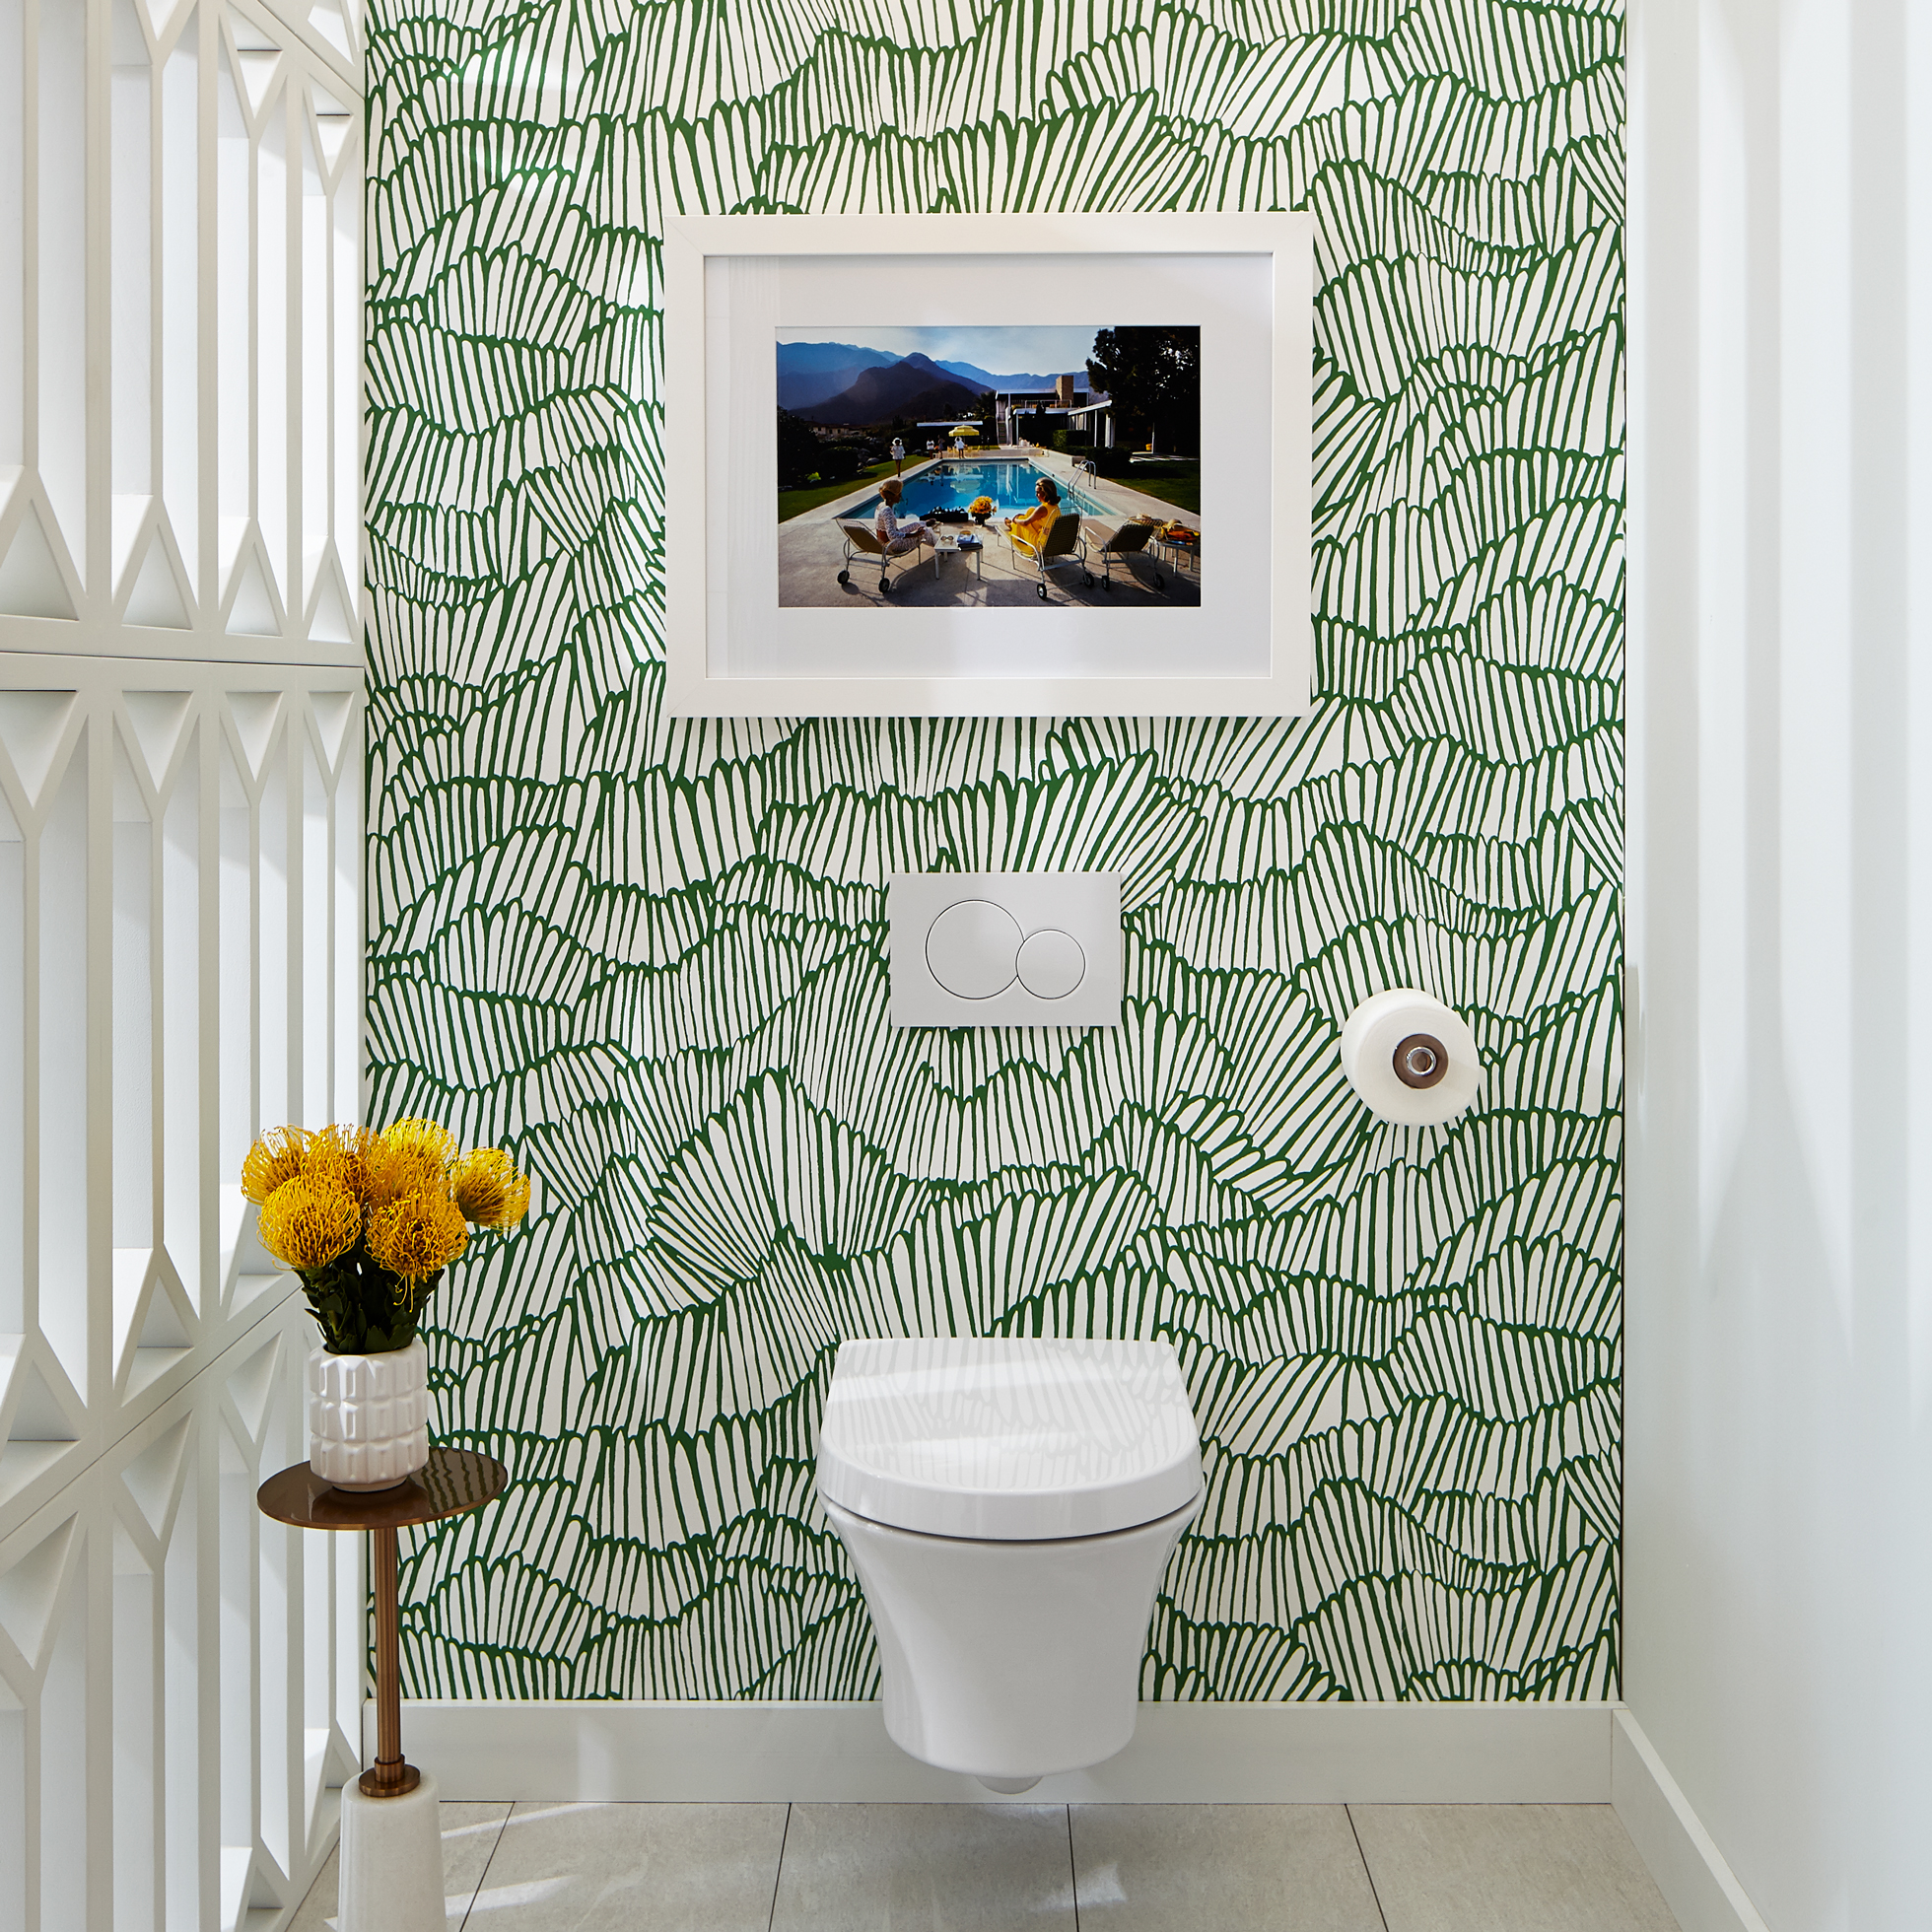 Bathroom with white/green wallpaper and wall-hung toilet